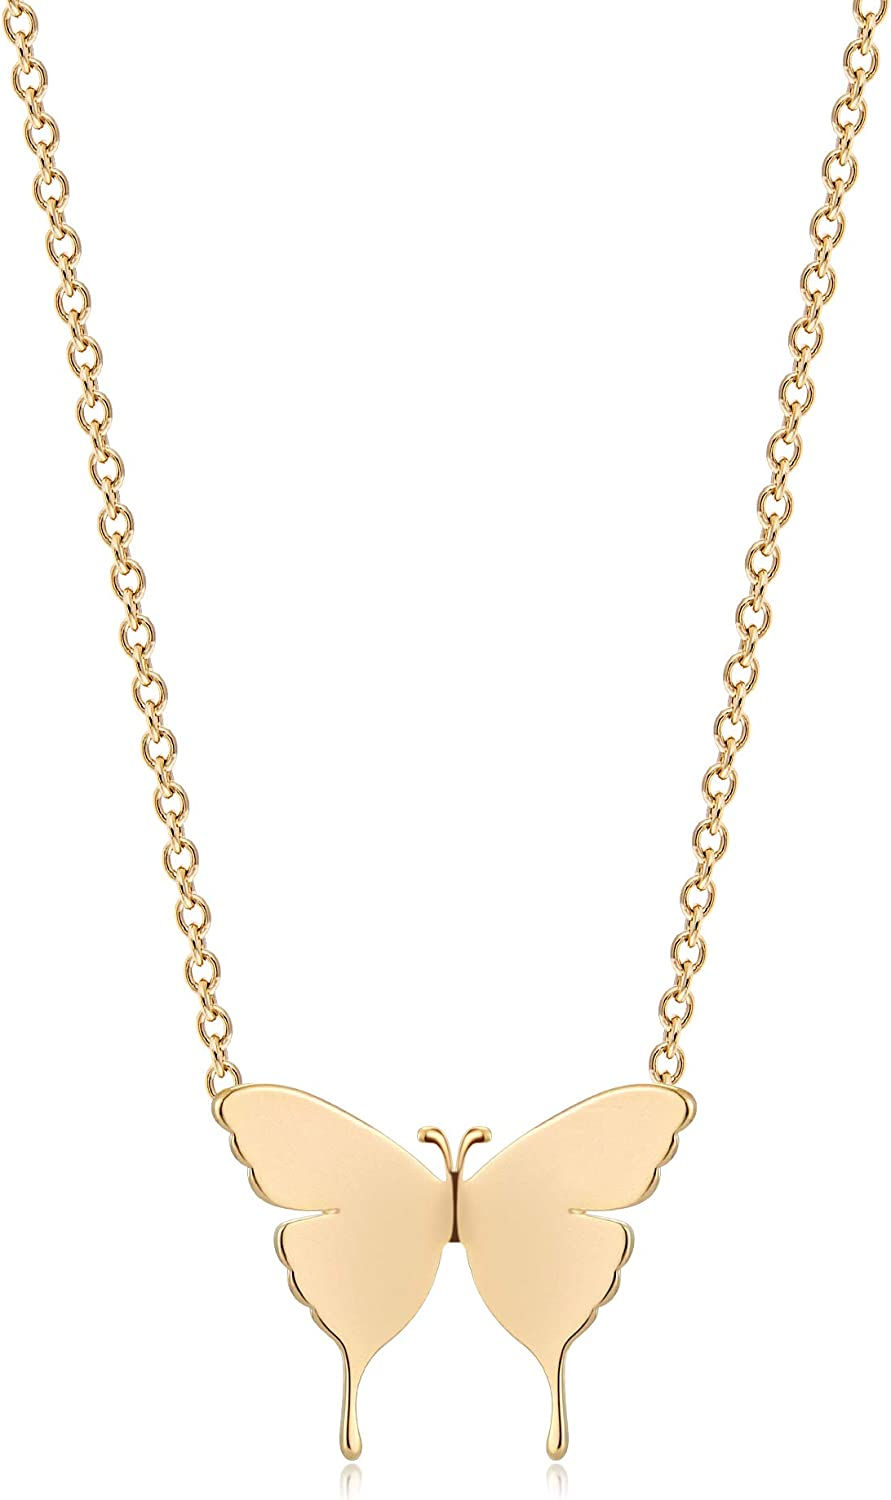 Mevecco Gold Dainty Initial Necklace 18K Gold Plated Butterfly Pendant Name Necklaces Delicate Everyday Necklace for Women Minimalist Personalized Jewelry